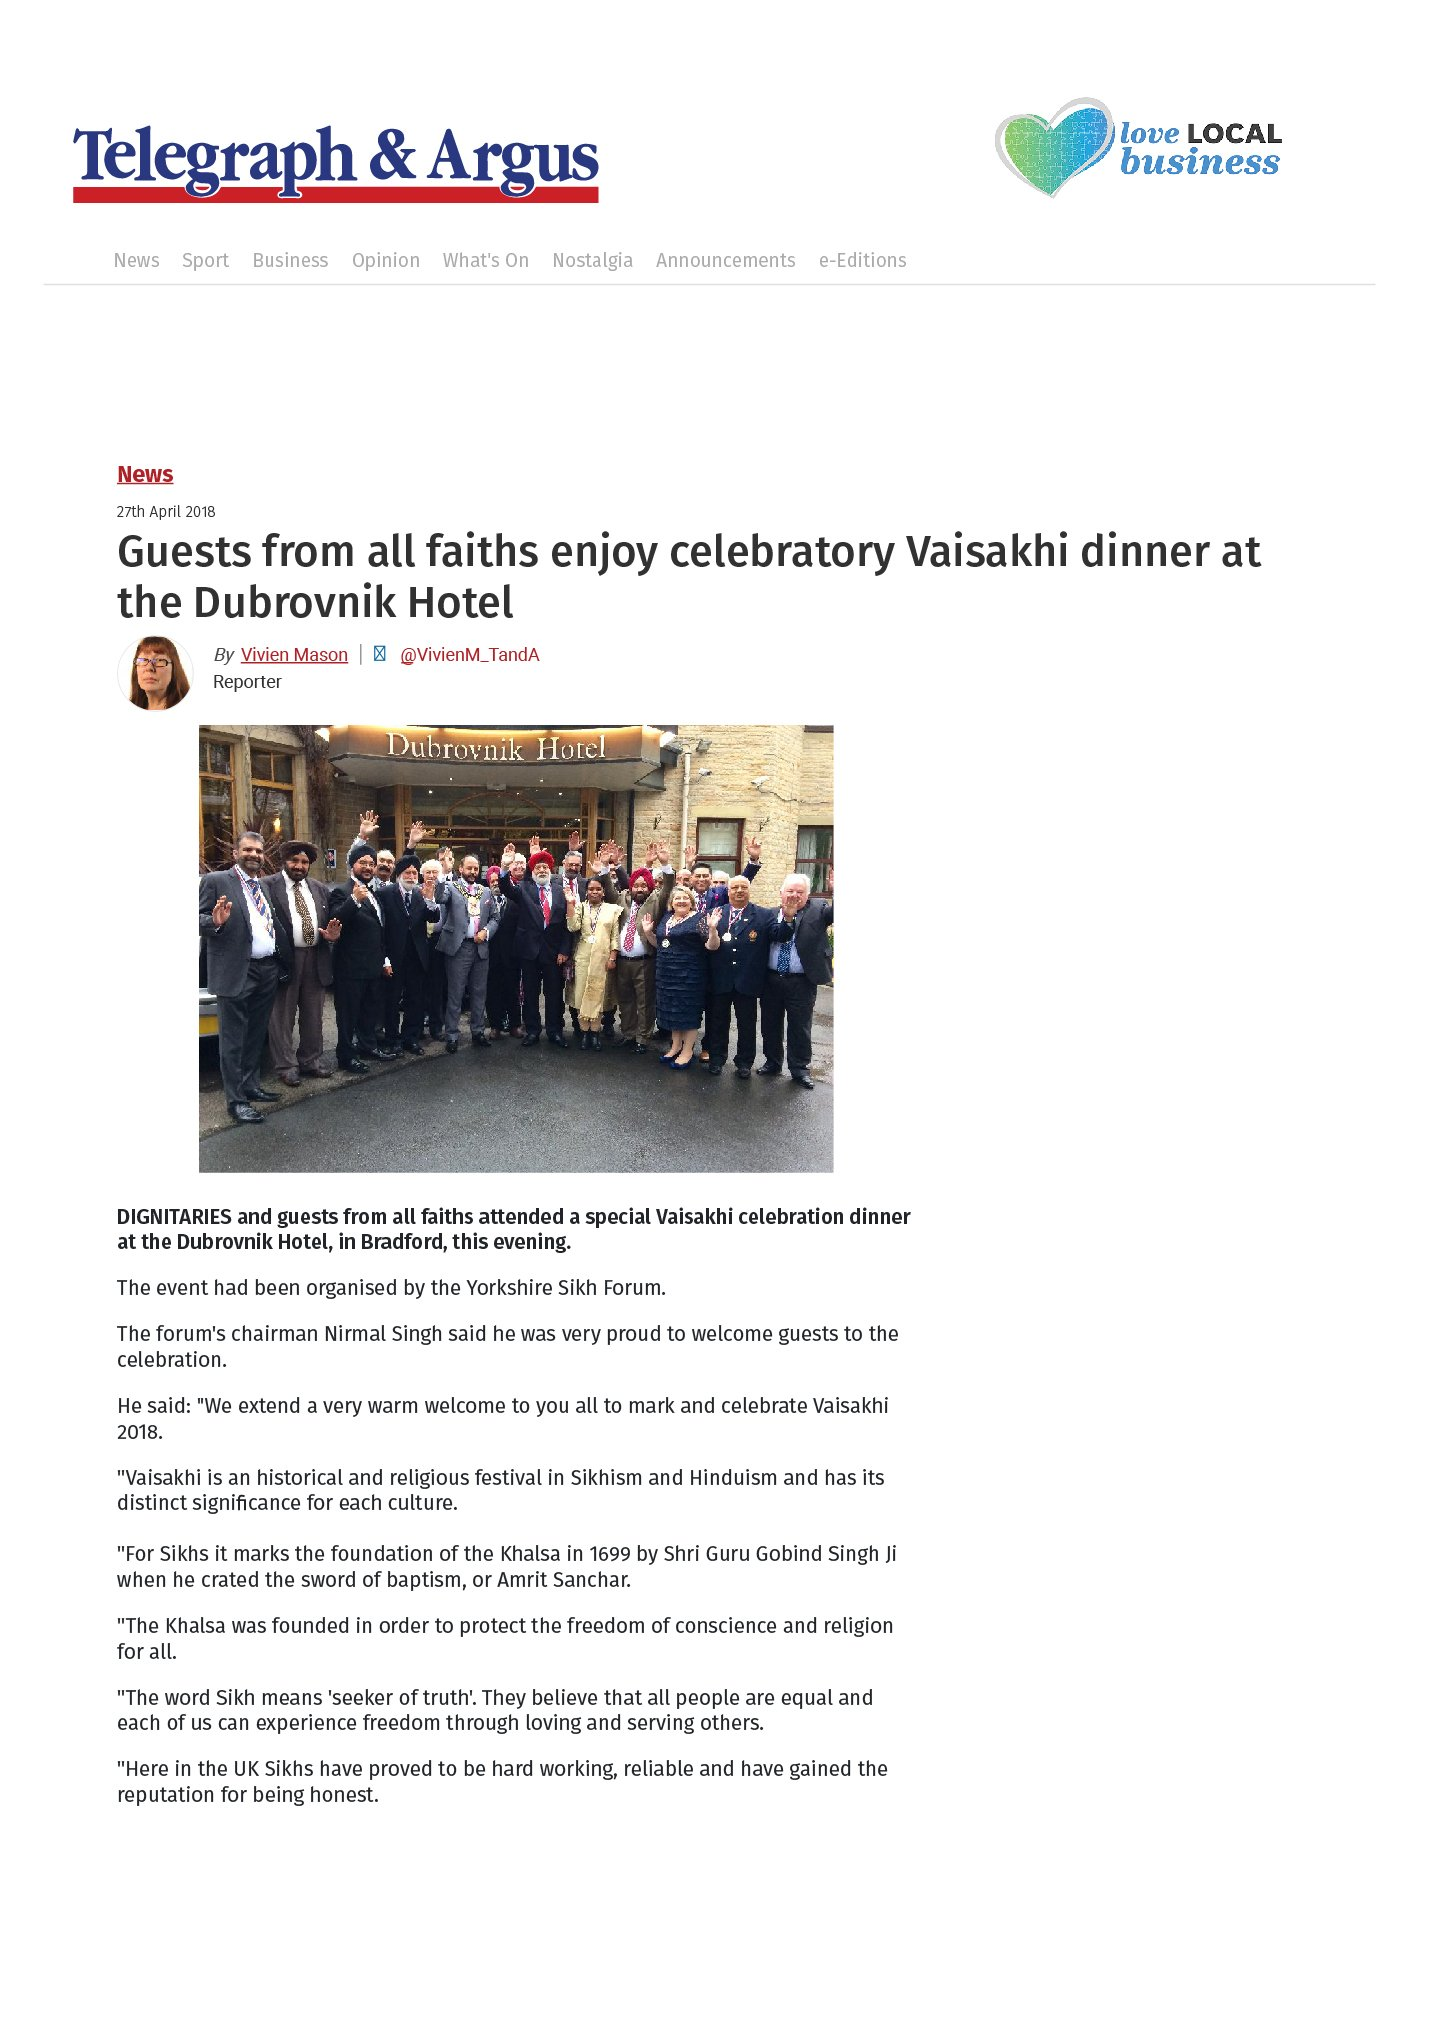 Guests from all faiths enjoy celebratory Vaisakhi dinner at the Dubrovnik Hotel